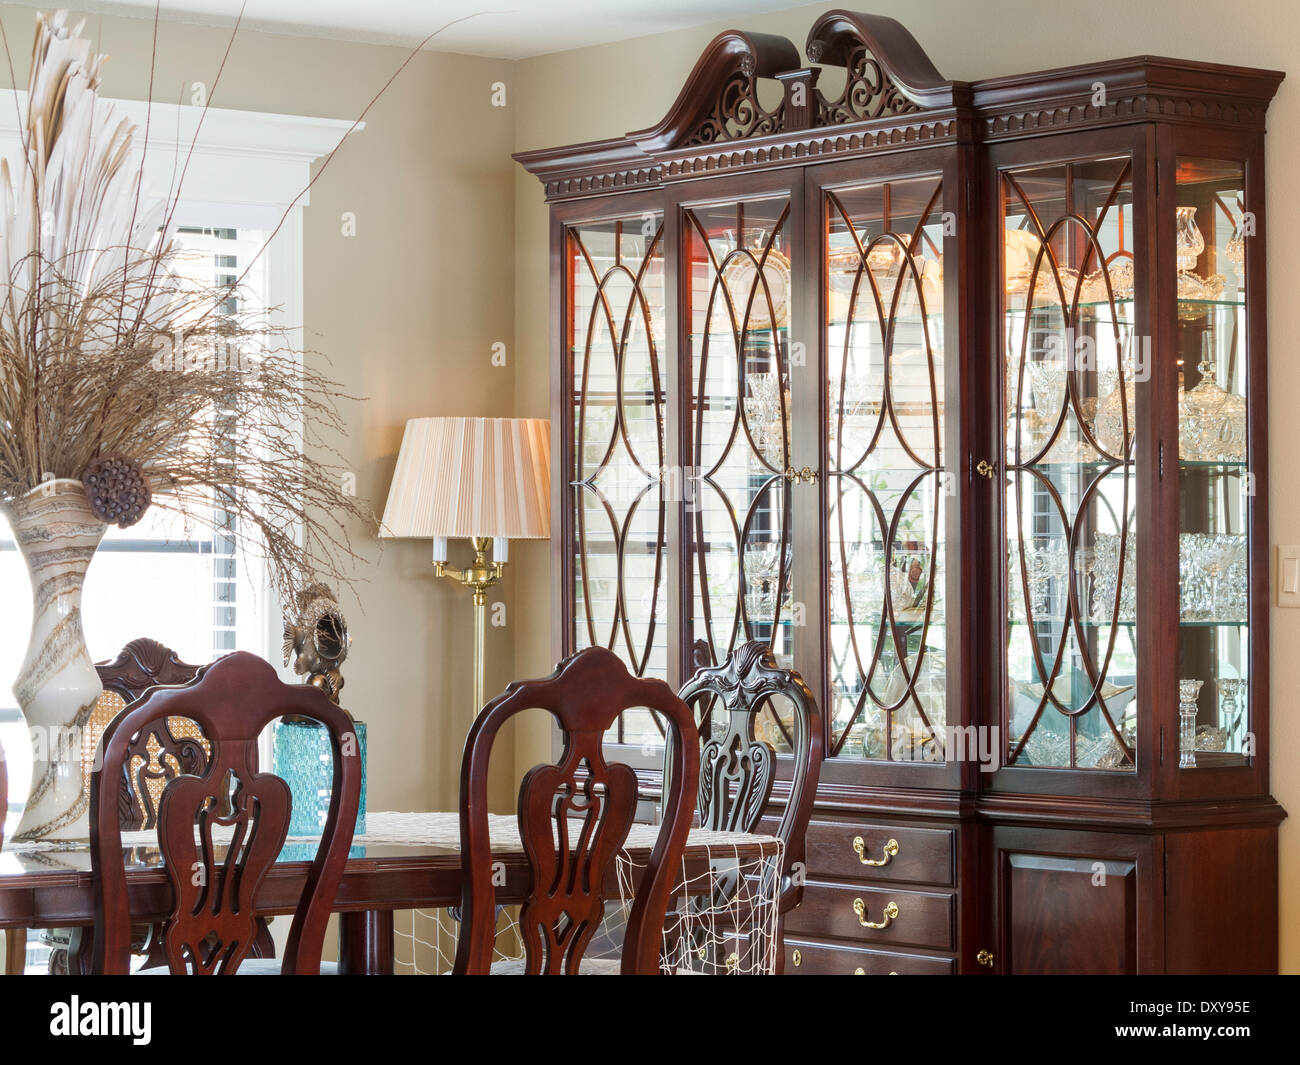 Showcase Dining Room Interior, USA Stock Photo, Royalty Free Image ...